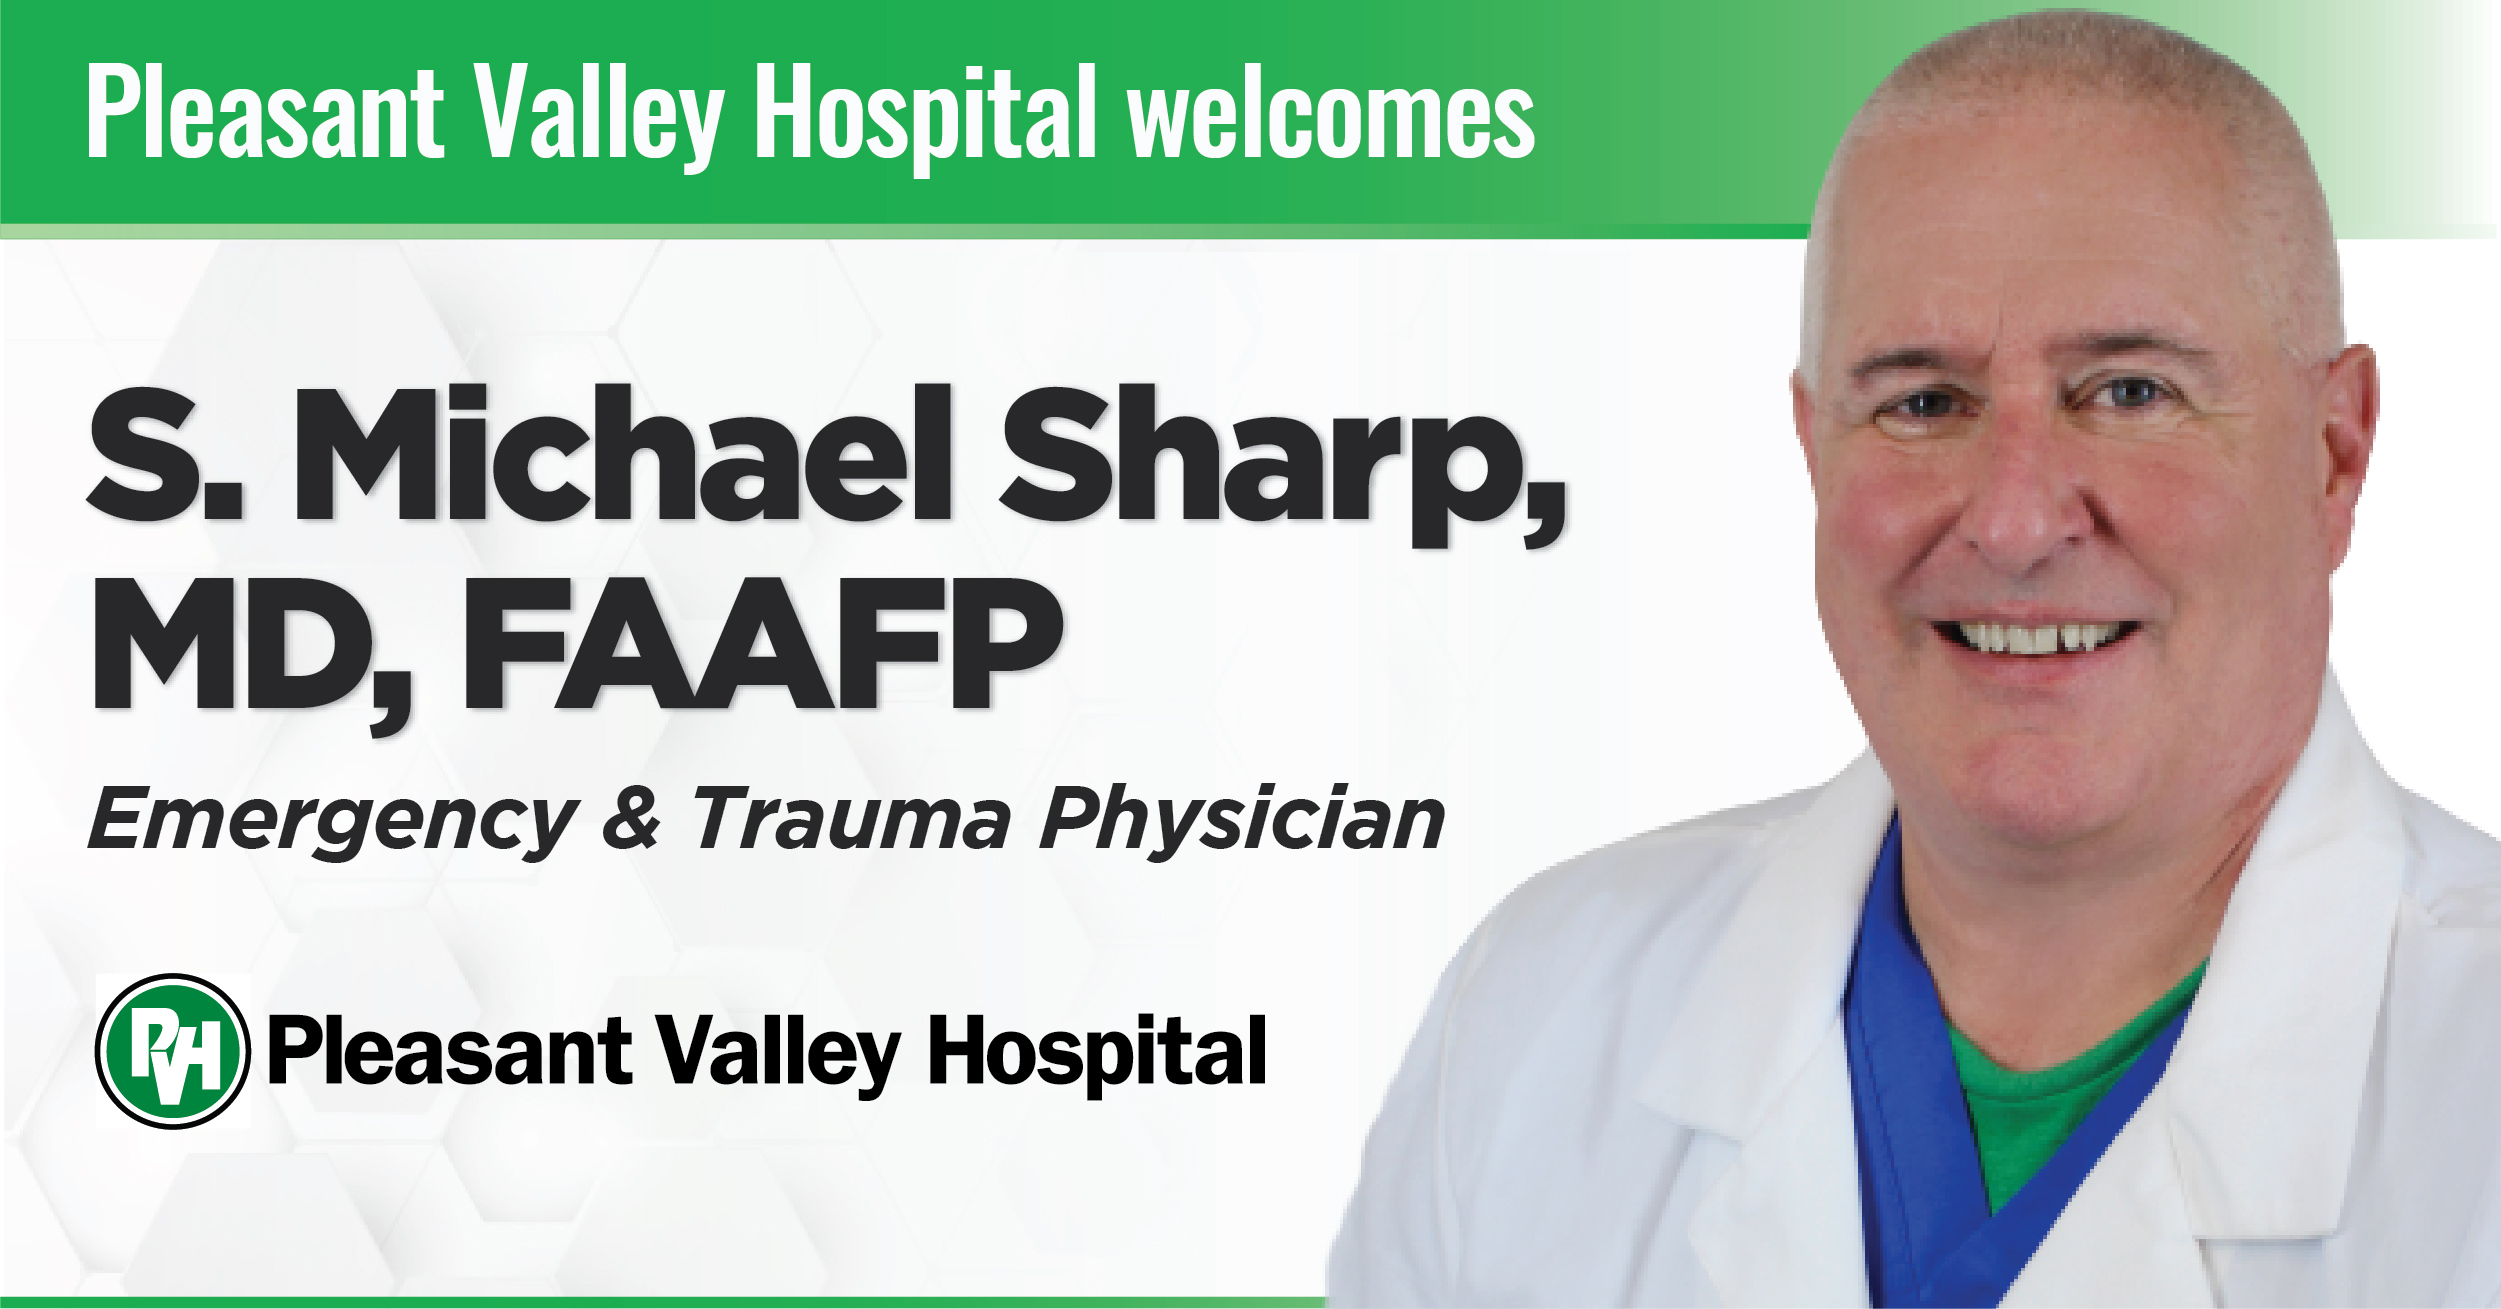 Pleasant Valley Hospital welcomes S. Michael Sharp, MD, FAAFP Emergency & Trauma Physician Pleasant Valley Hospital